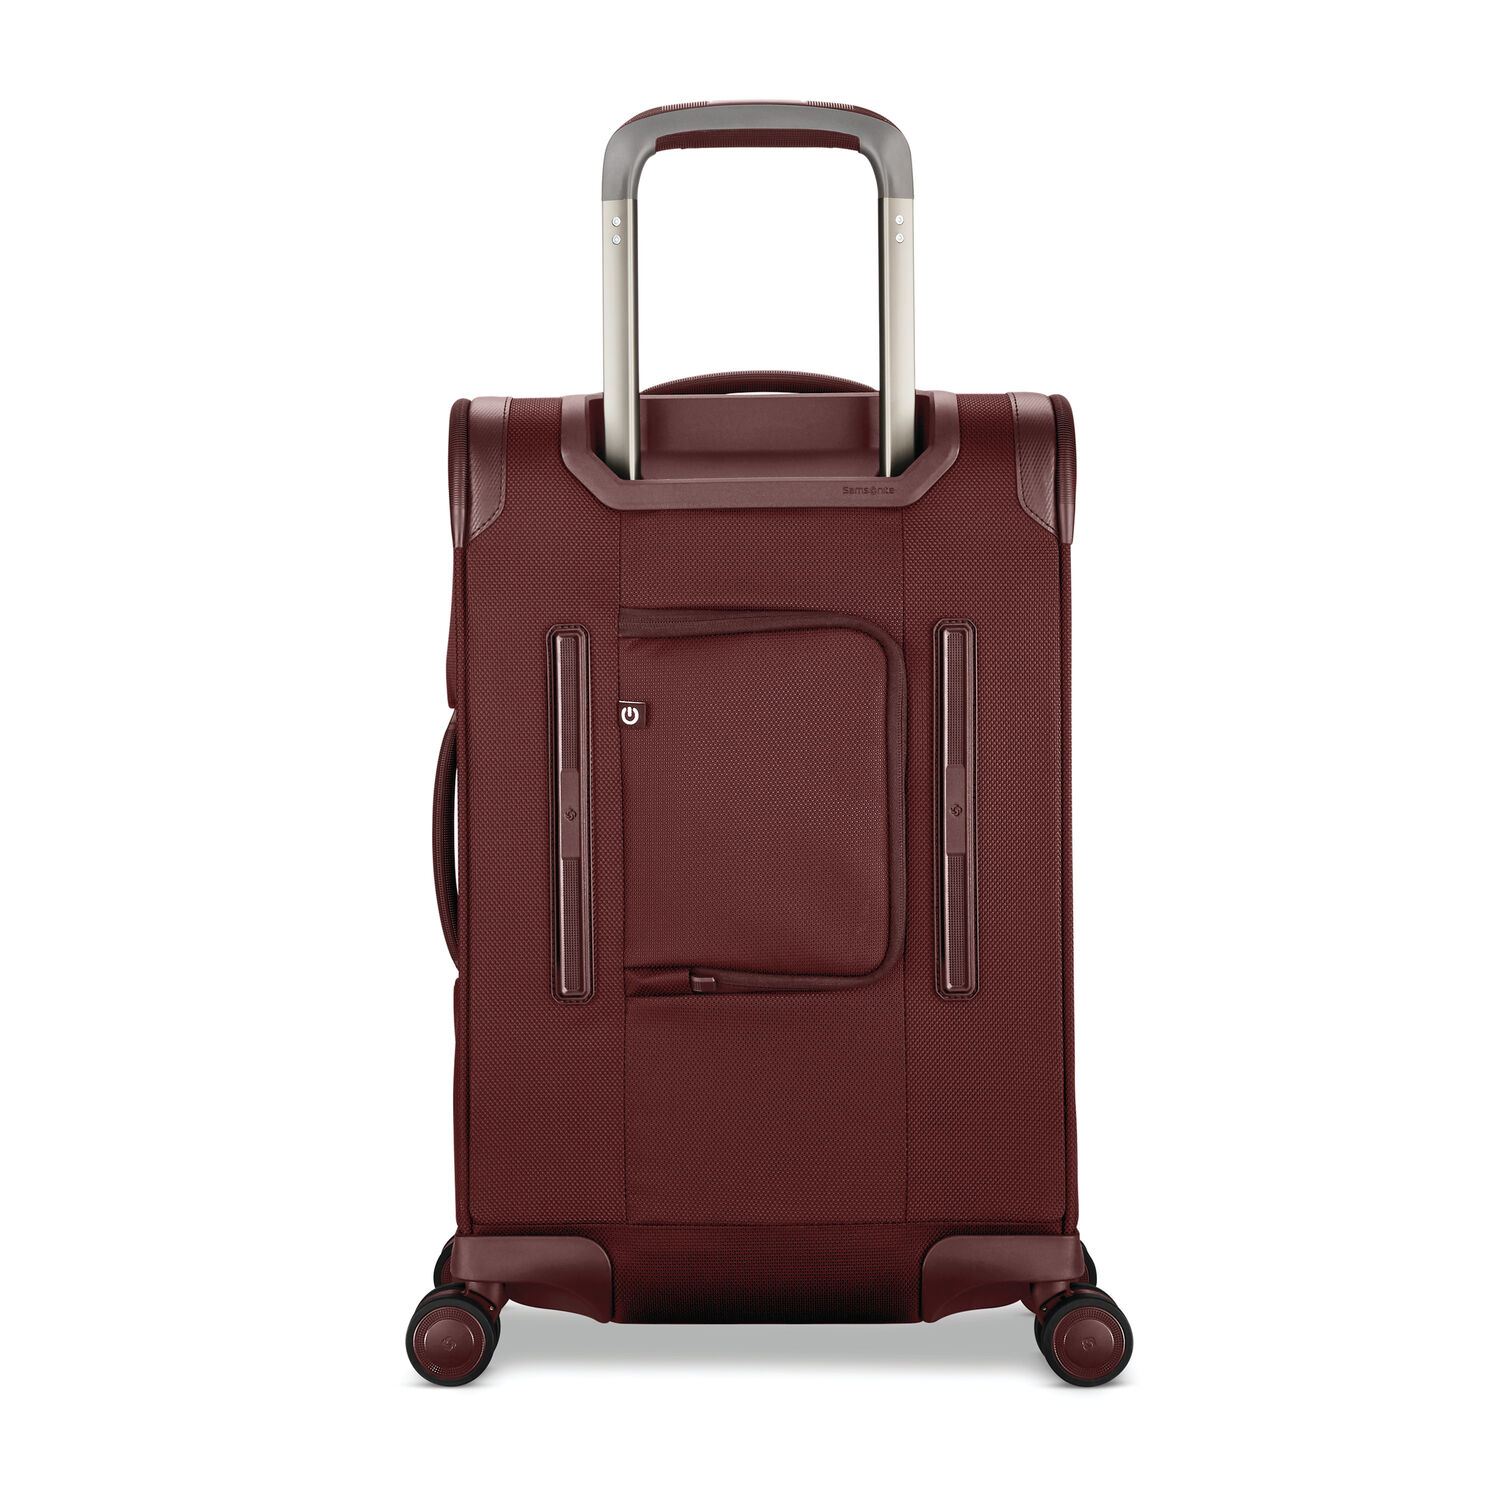 03d55e2293dbb6 Samsonite Silhouette 16 Expandable Carry-On Spinner in the color Cabernet  Red.